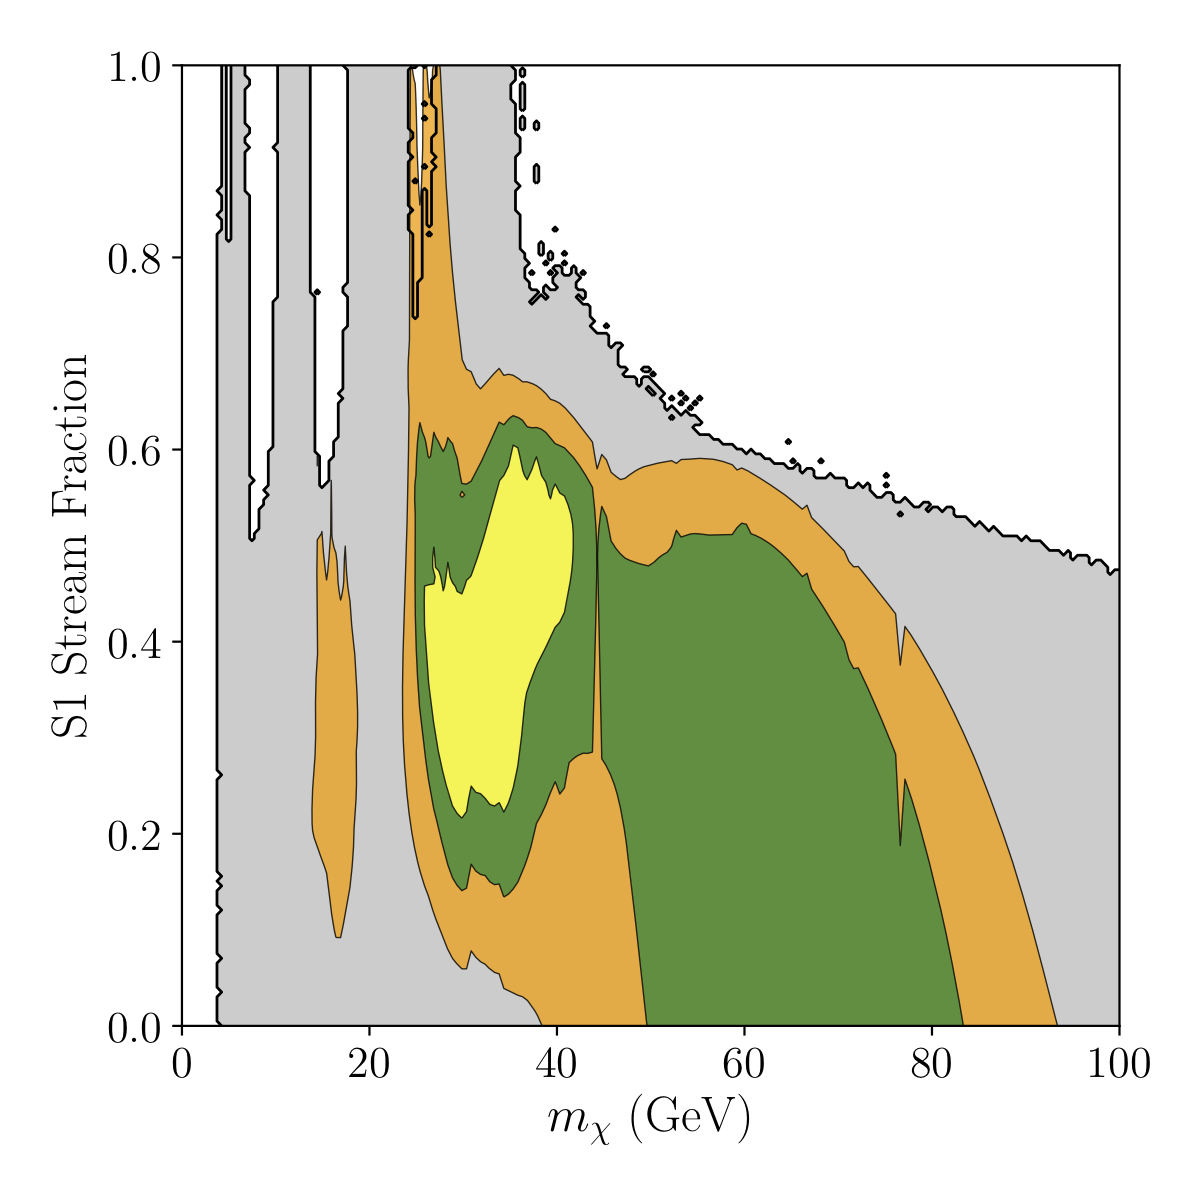 Best-fit regions to DAMA/Libra Recoil Spectrum as a function of mass and stream density fraction for spin-independent elastic scatter (yellow, green, orange are 1,2,3 sigma fits). Grey shaded region are parameter points ruled out by null results of other experiments. Note a very small allowed region at 3 sigma near 30 GeV and >80% stream fraction.